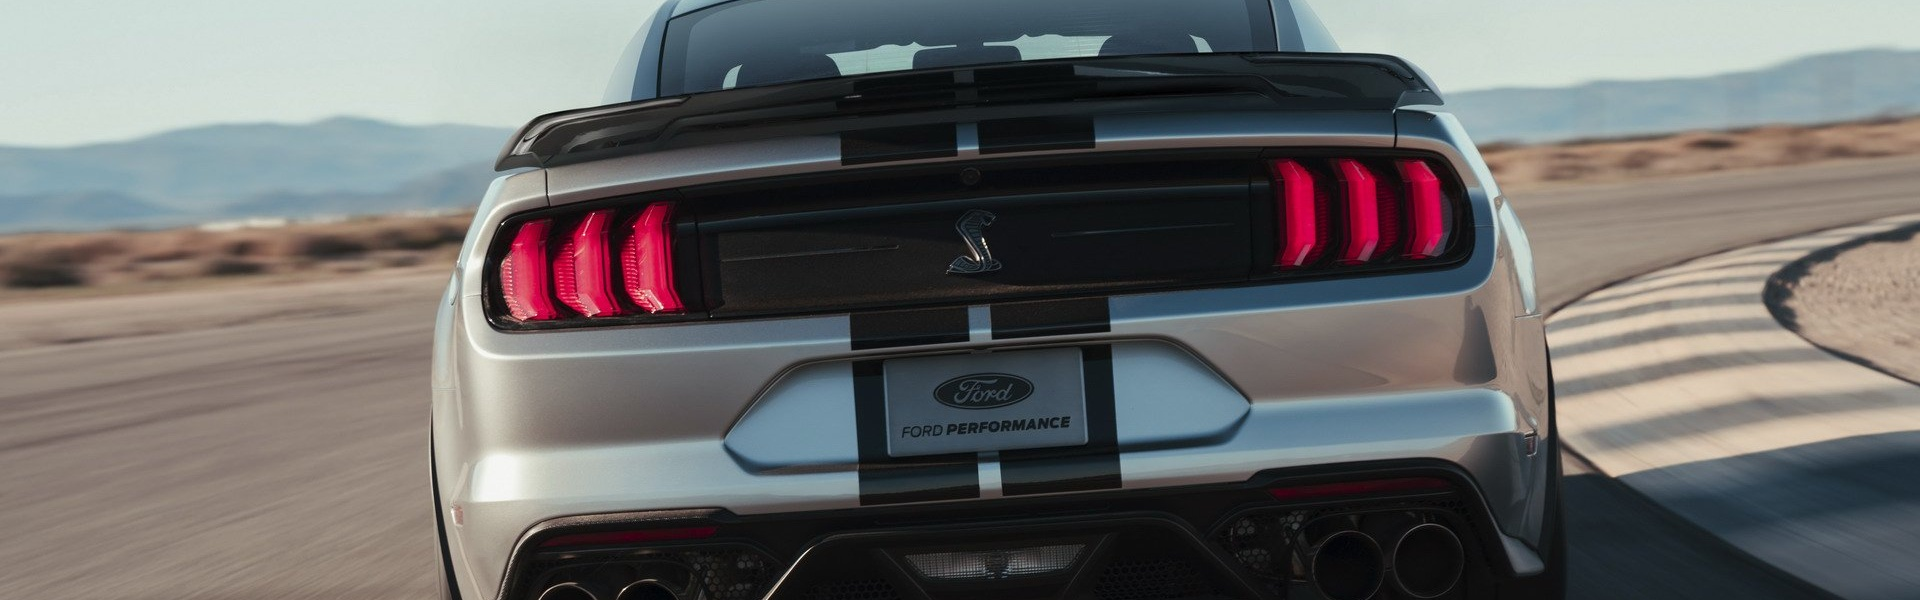 2020-ford-mustang-shelby-gt500-57.jpg